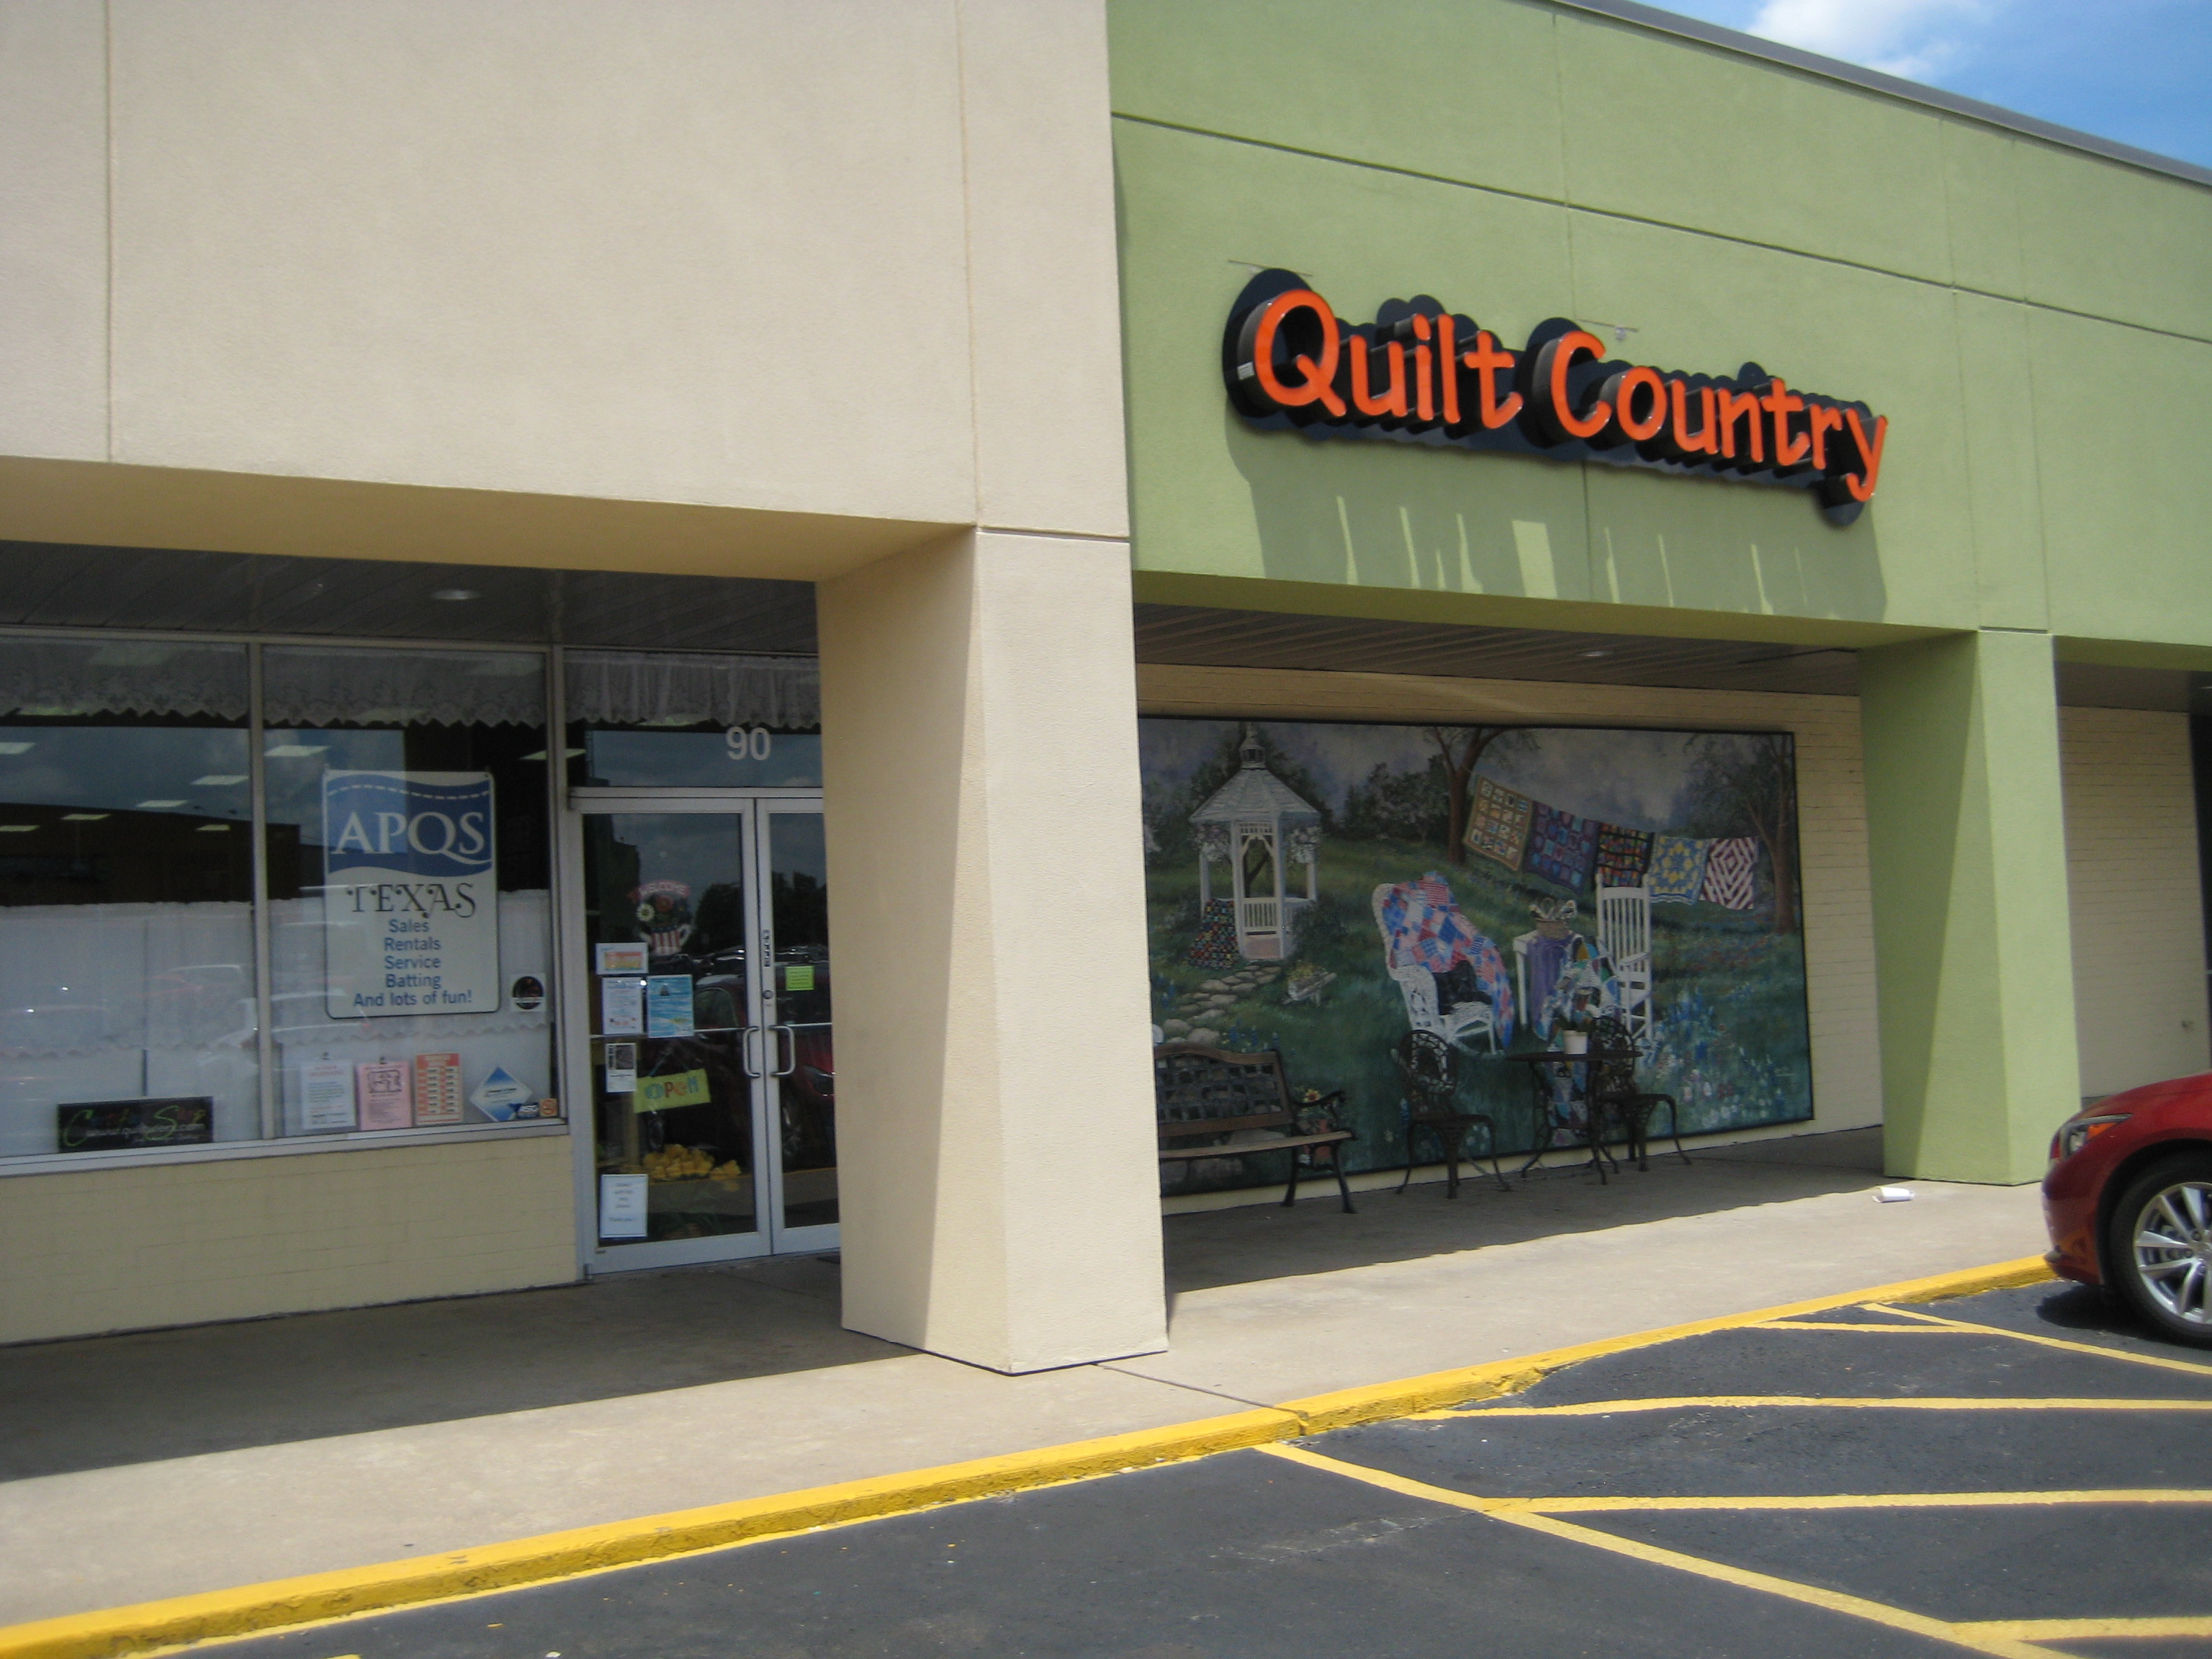 Quilt Country 002